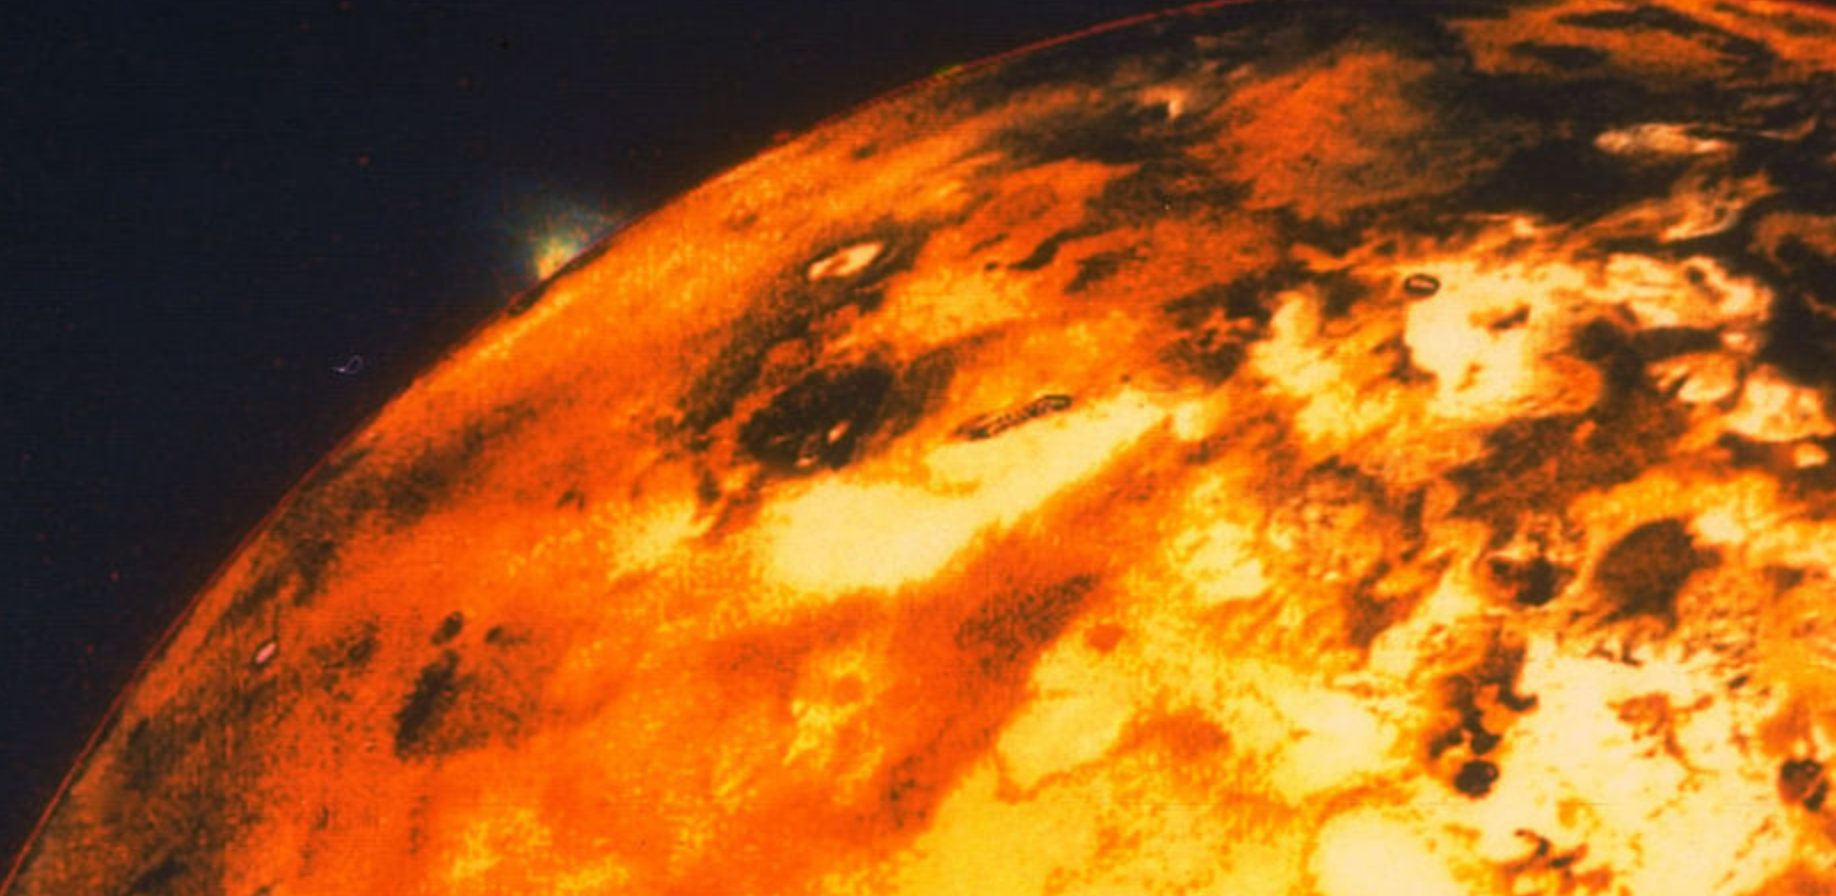 Io is a distant volcanic world that orbits Jupiter in our Solar System.